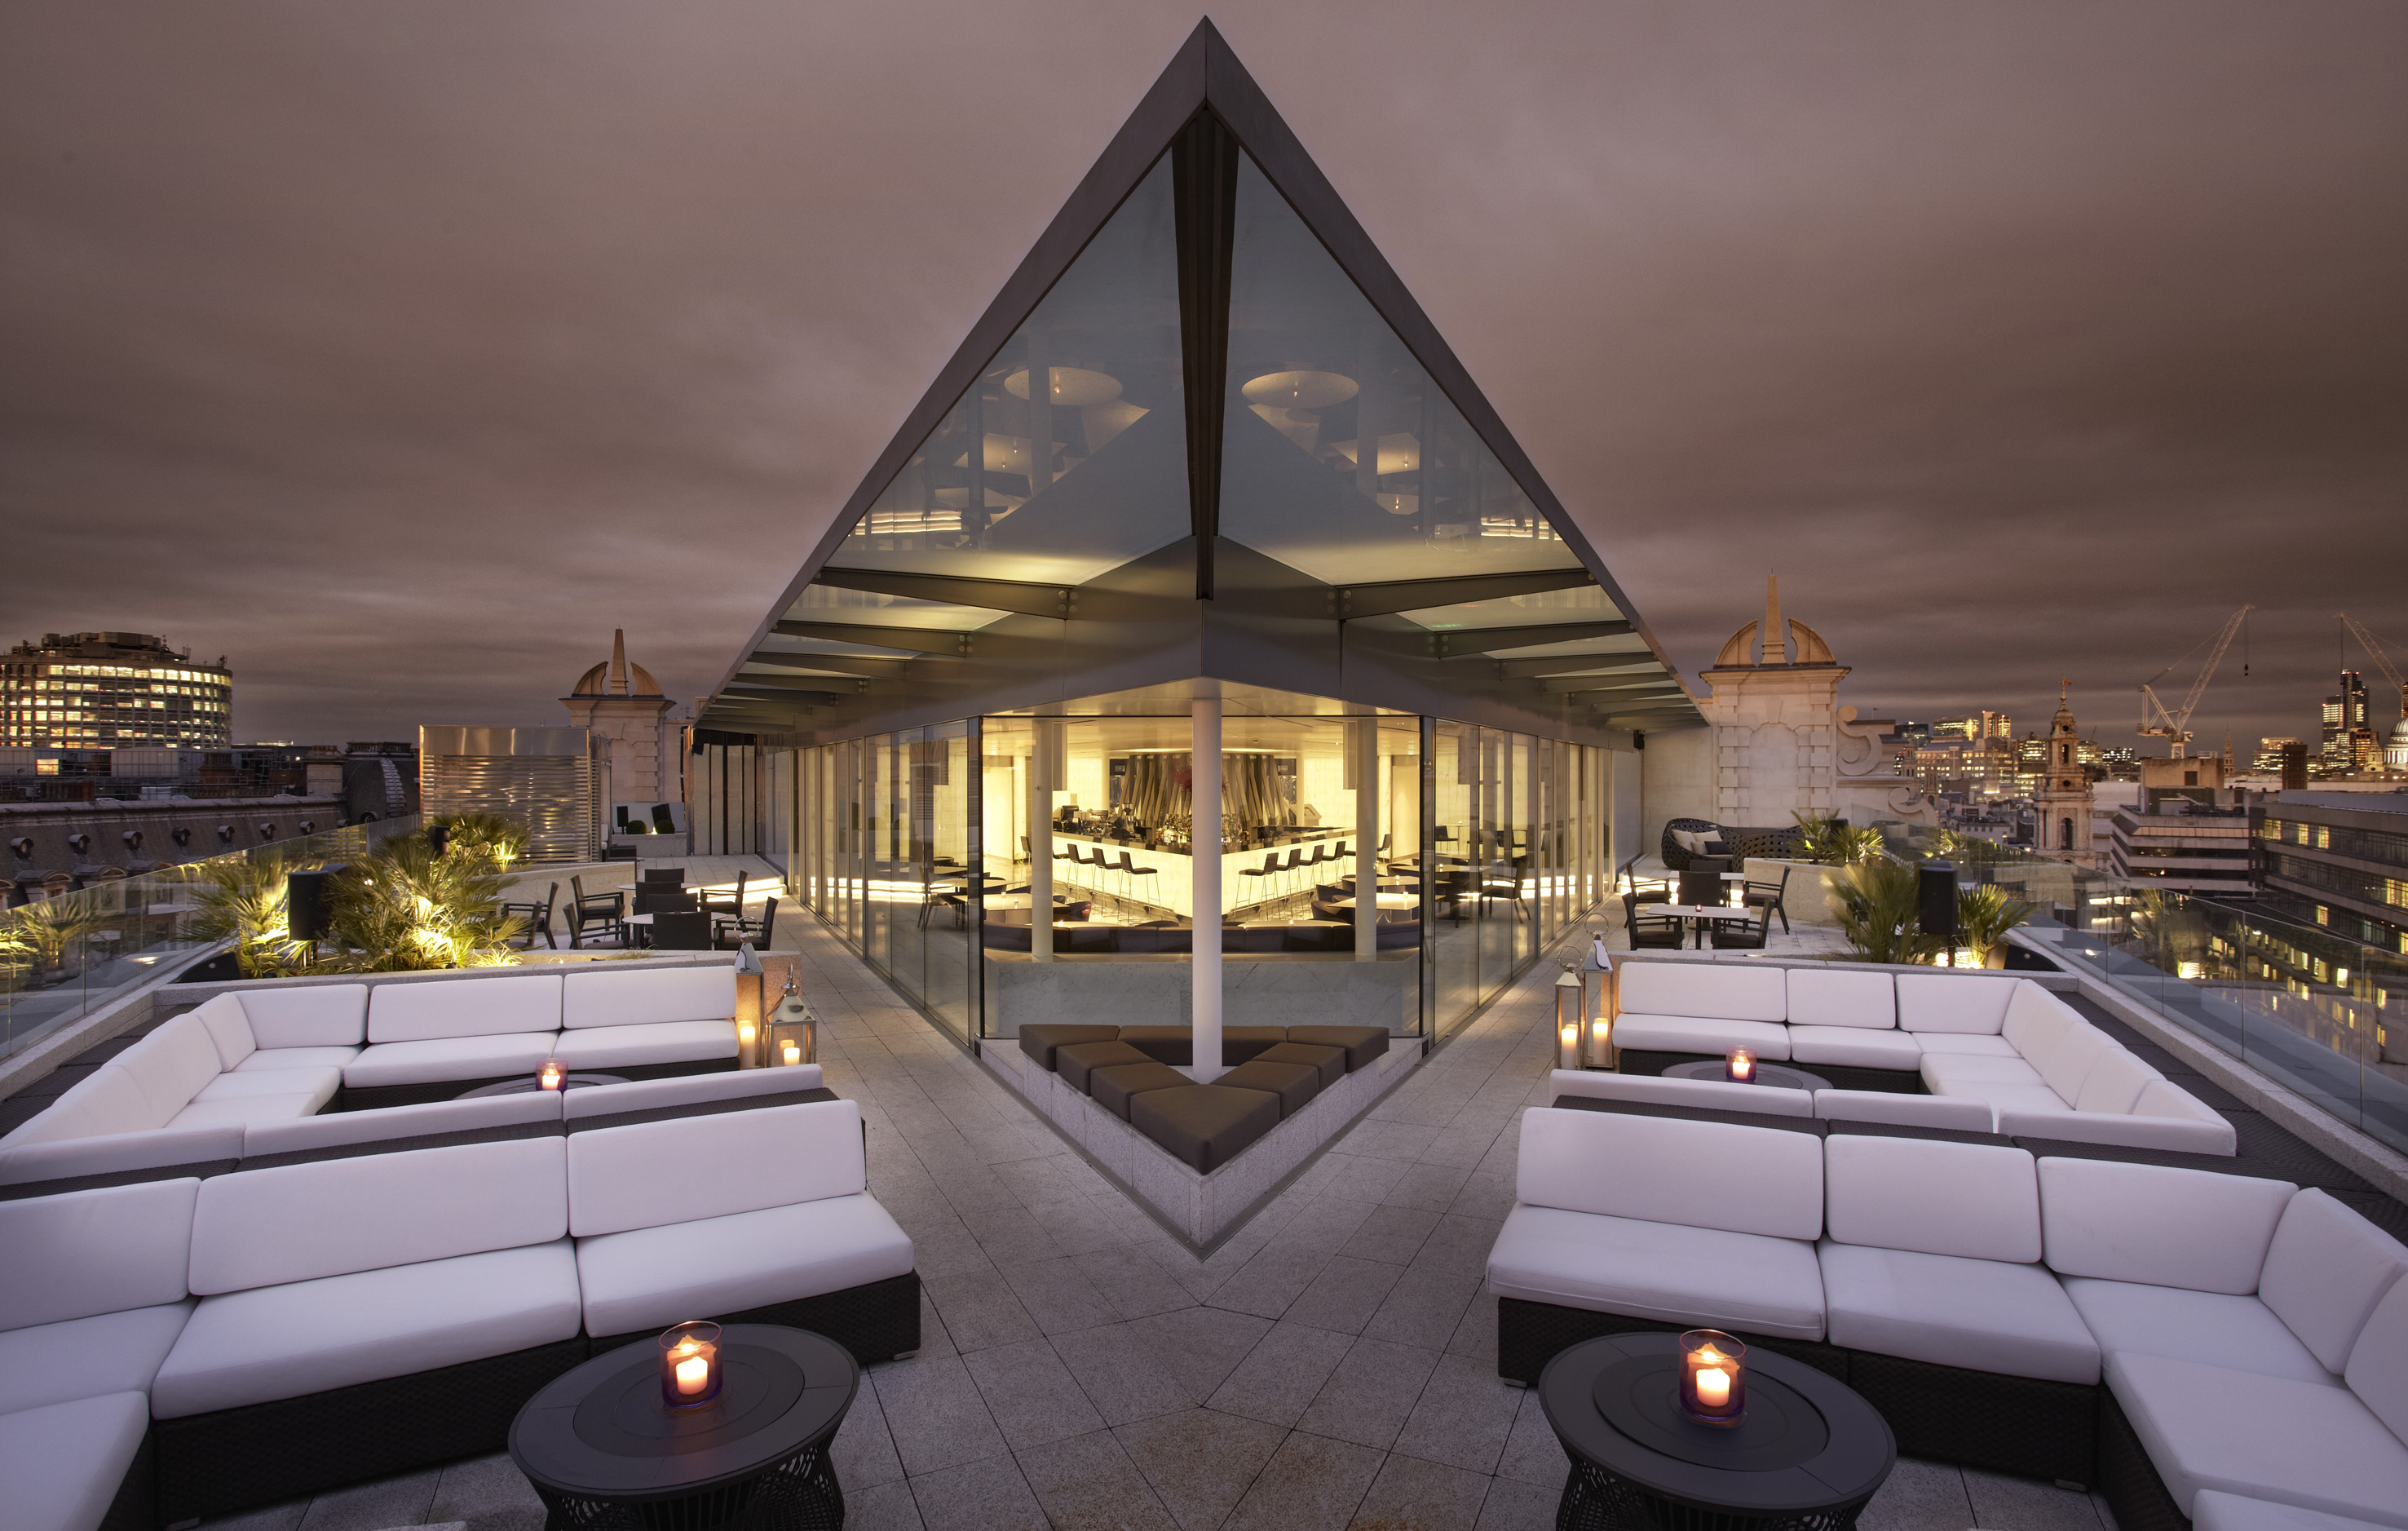 London's best alfresco rooftop bars